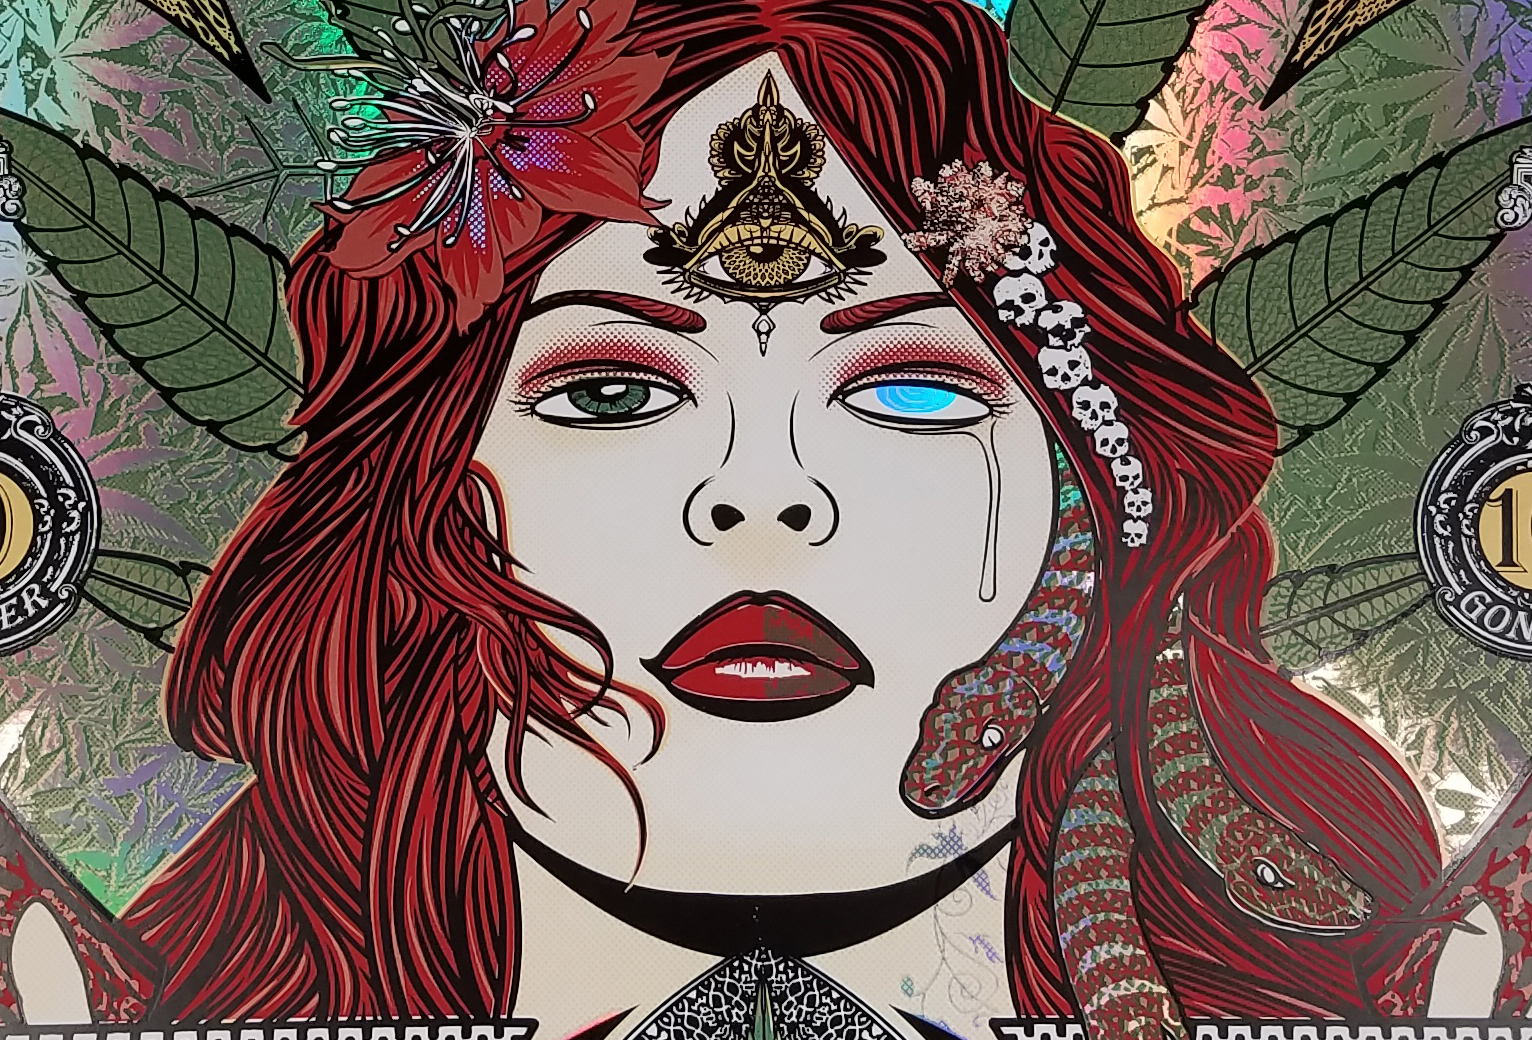 The foil goddess of limited availability!!